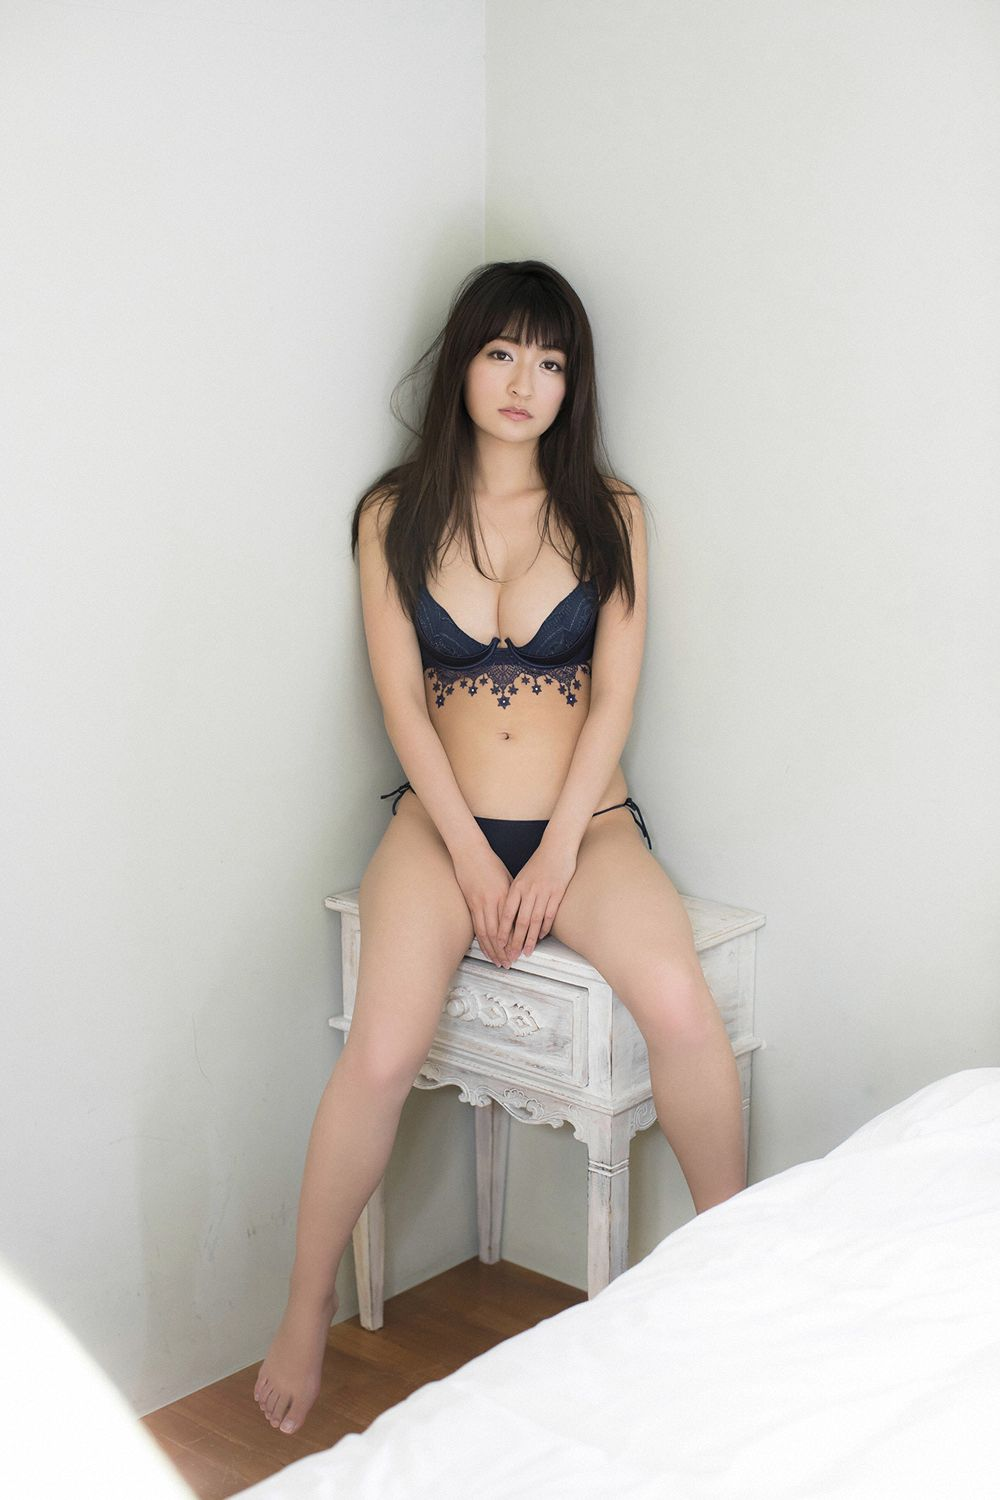 This is a girl with big tits who wants to be a popular girl051